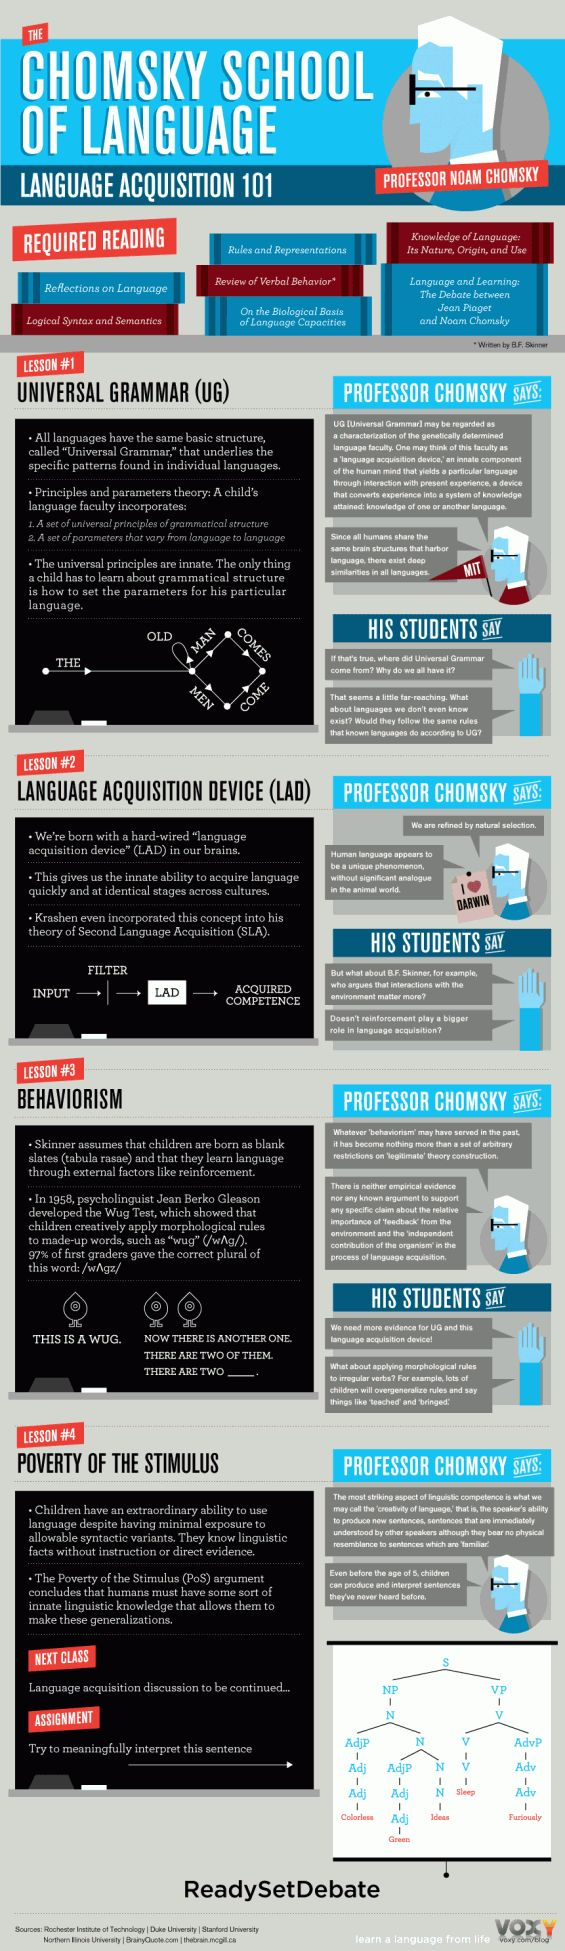 Noam Chomsky is a lot of things: cognitive scientist, philosopher, political activist and one of the fathers of modern linguistics, just to name a few. He has written more than 100 books and given lectures all over the world on topics ranging from syntax to failed states. In the infographic below, we take a look at some of his most well-known theories on language acquisition as if he were presenting them himself.